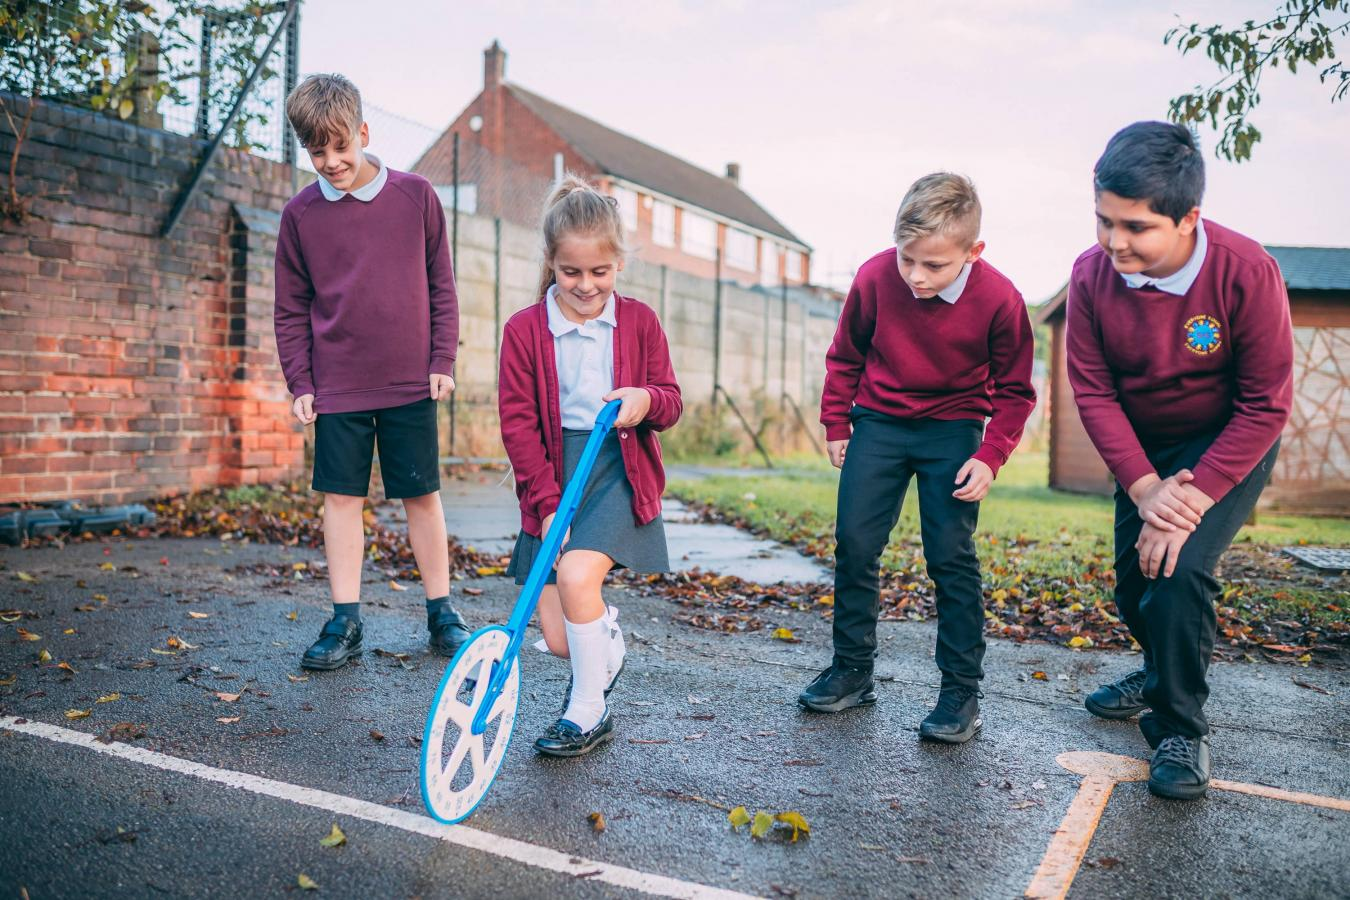 Pupils using a measuring wheel